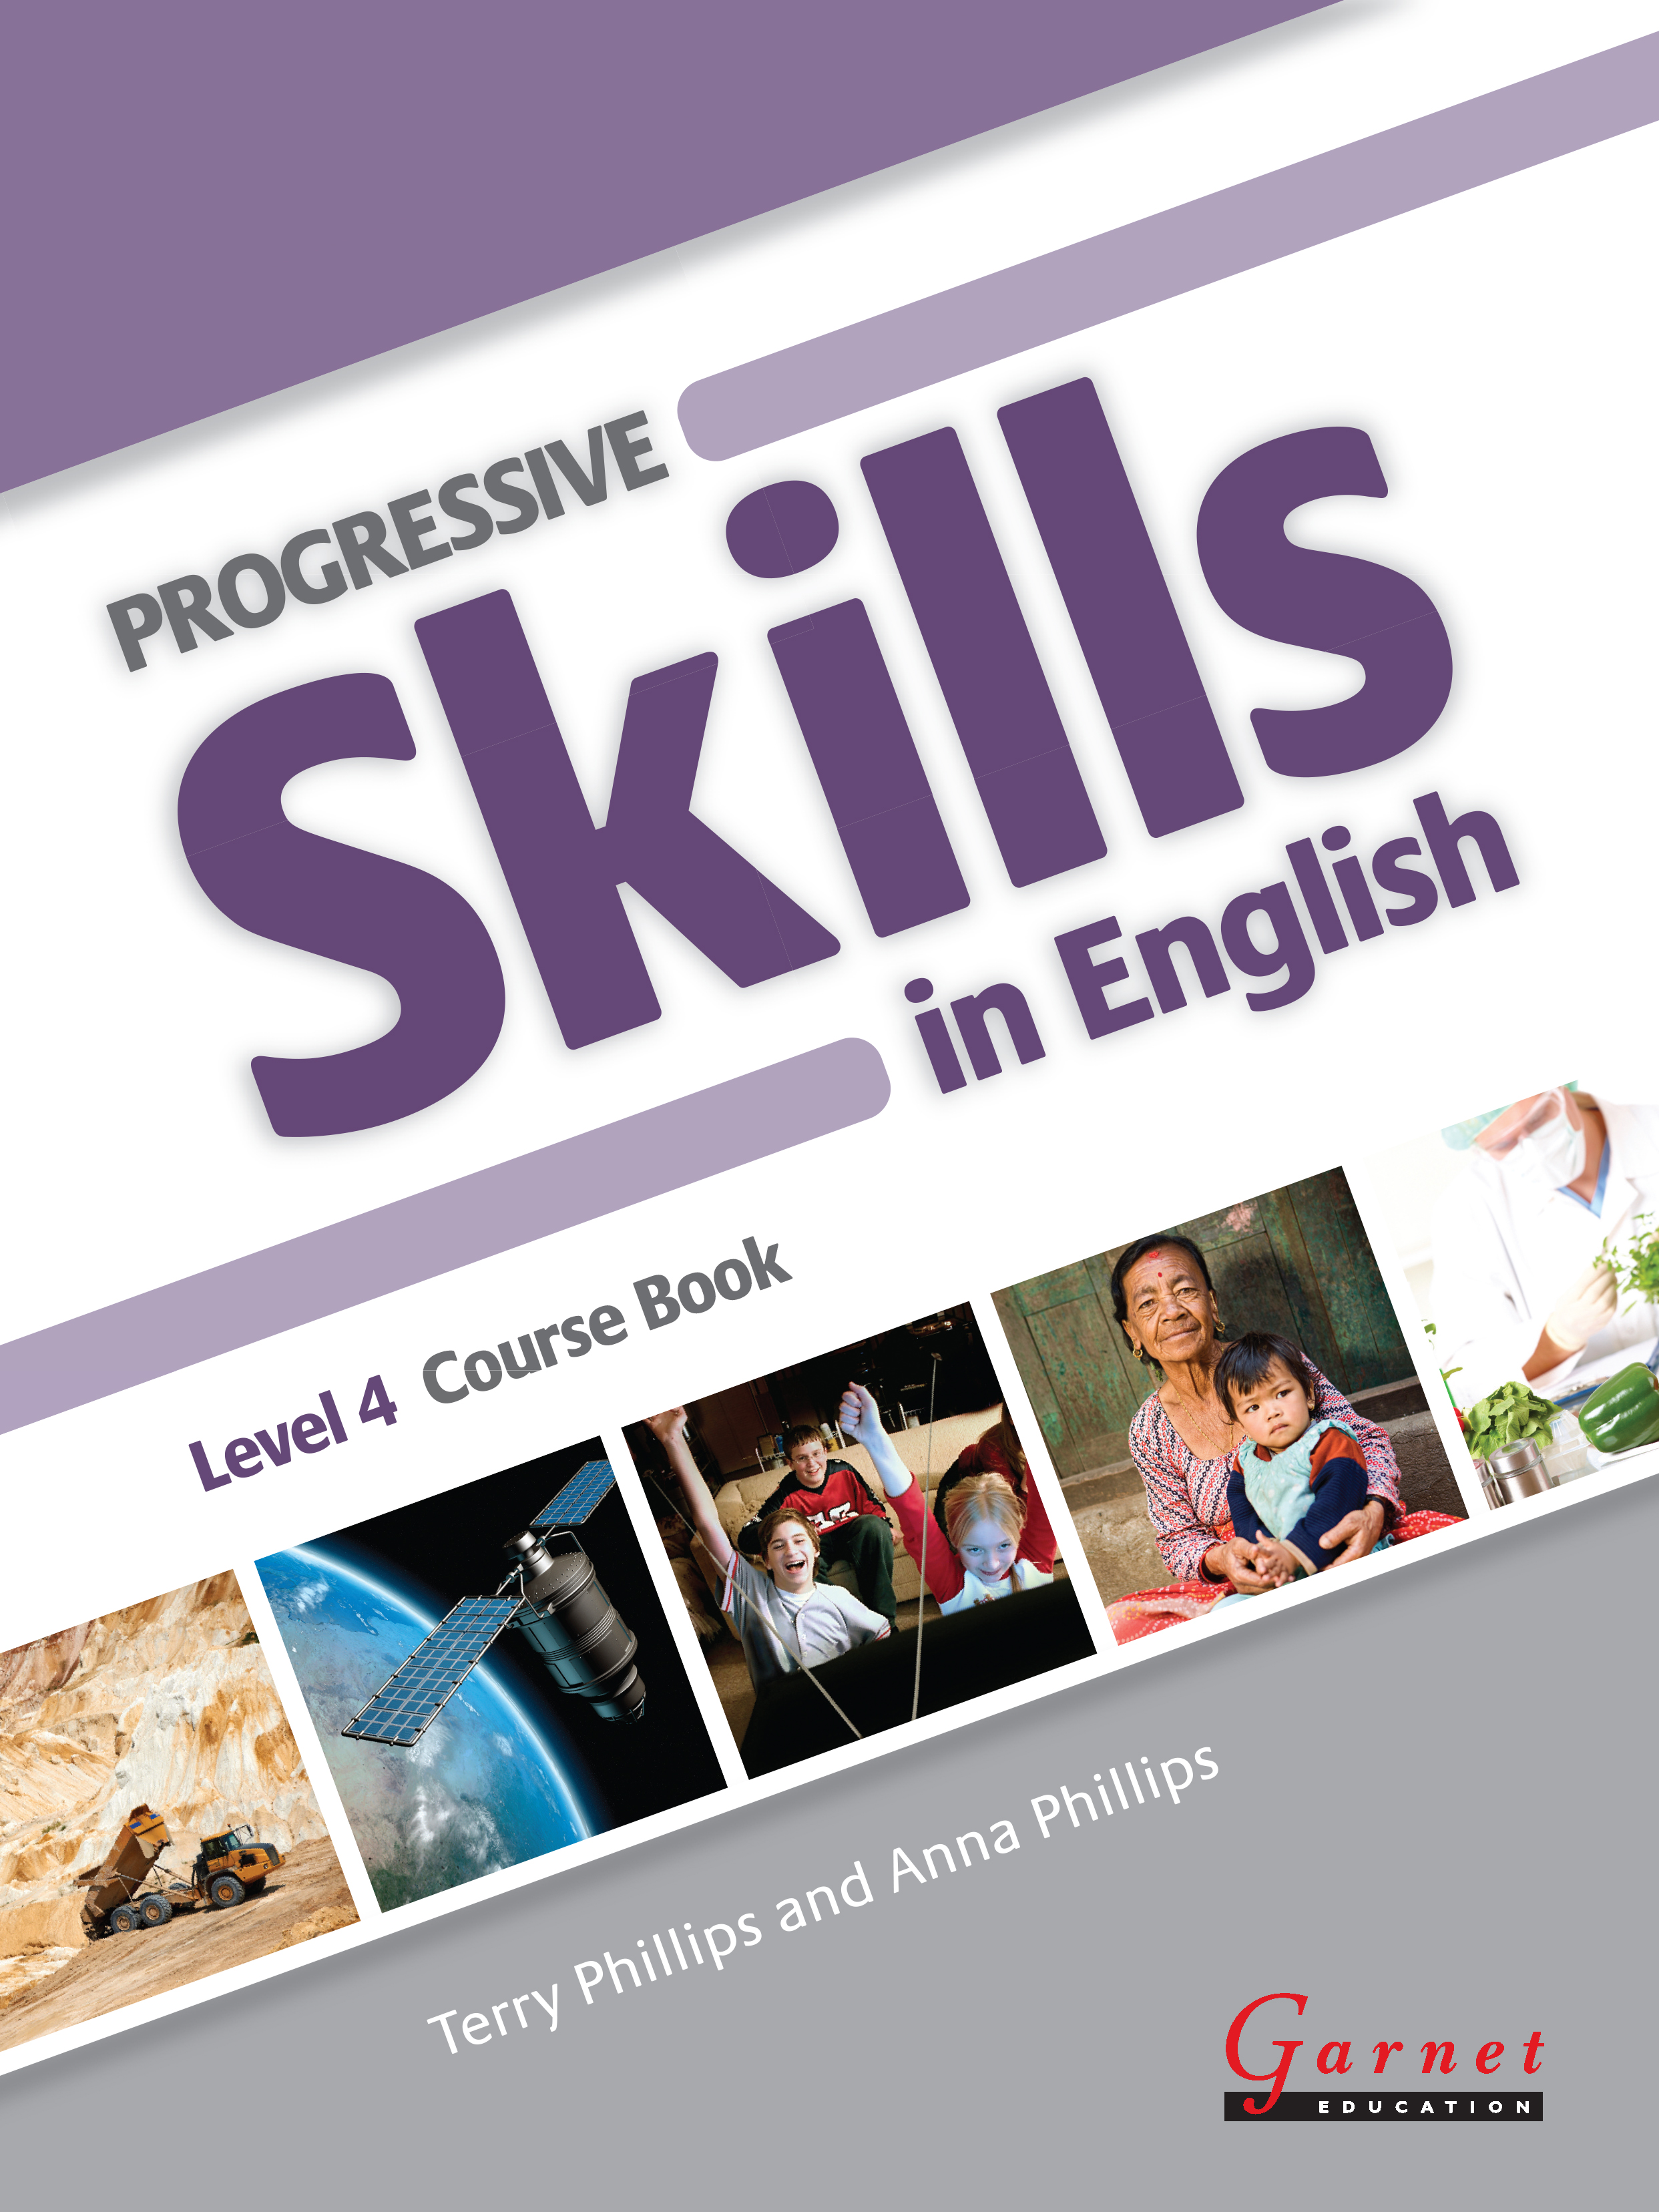 Progressive Skills in English 4 Course Book with CDs and DVD